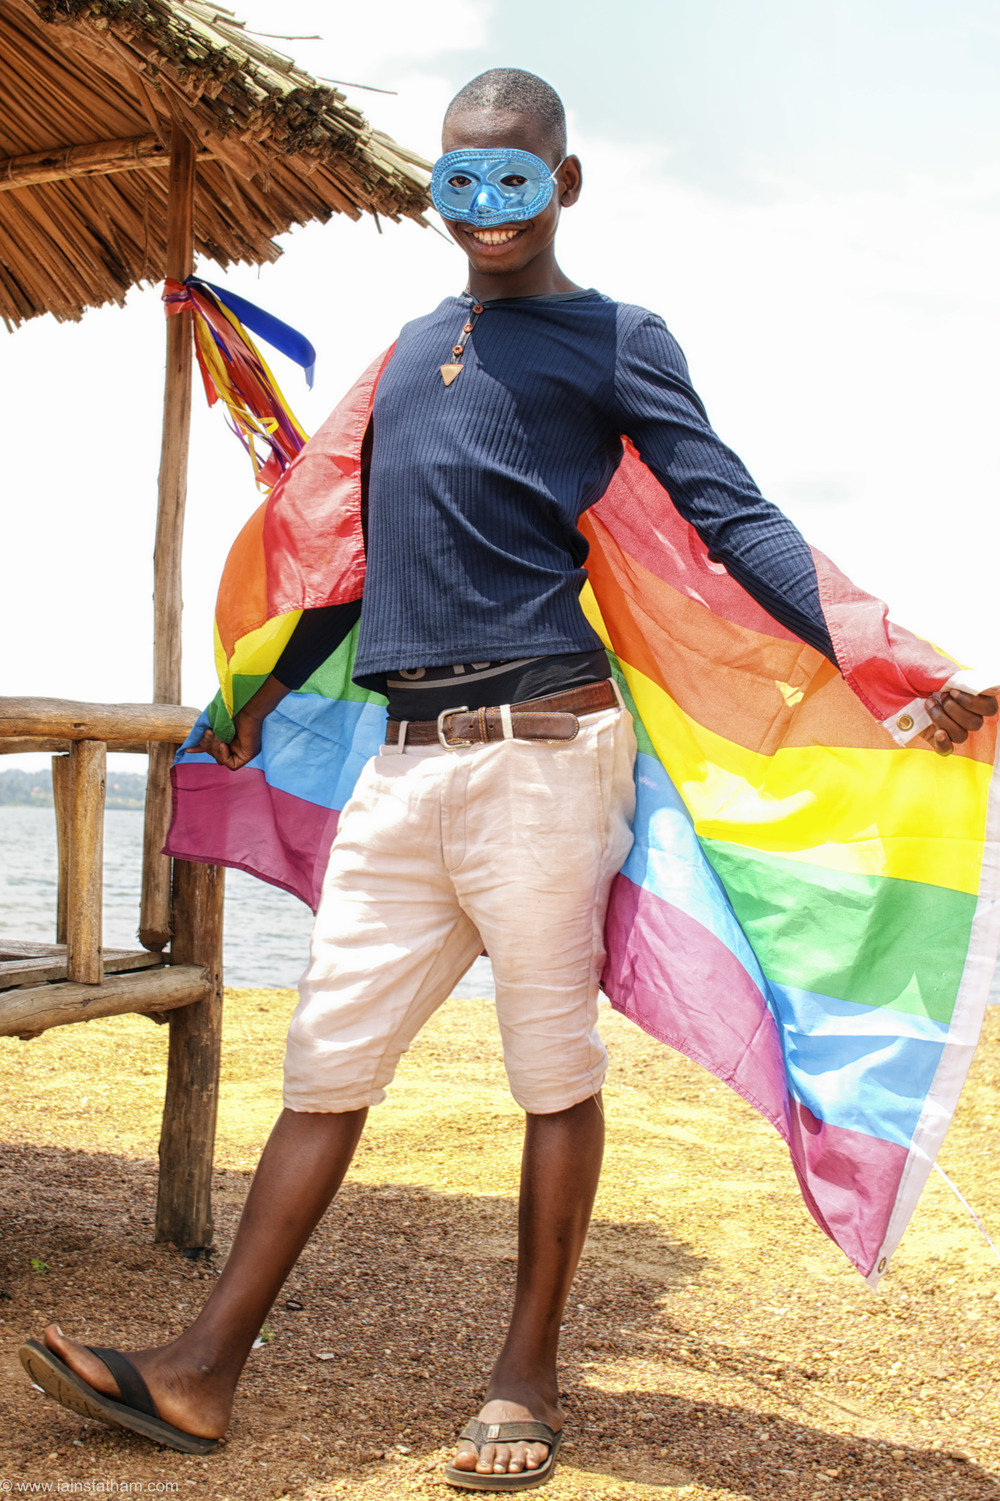 ug - entebbe - pride - colour-8.jpg